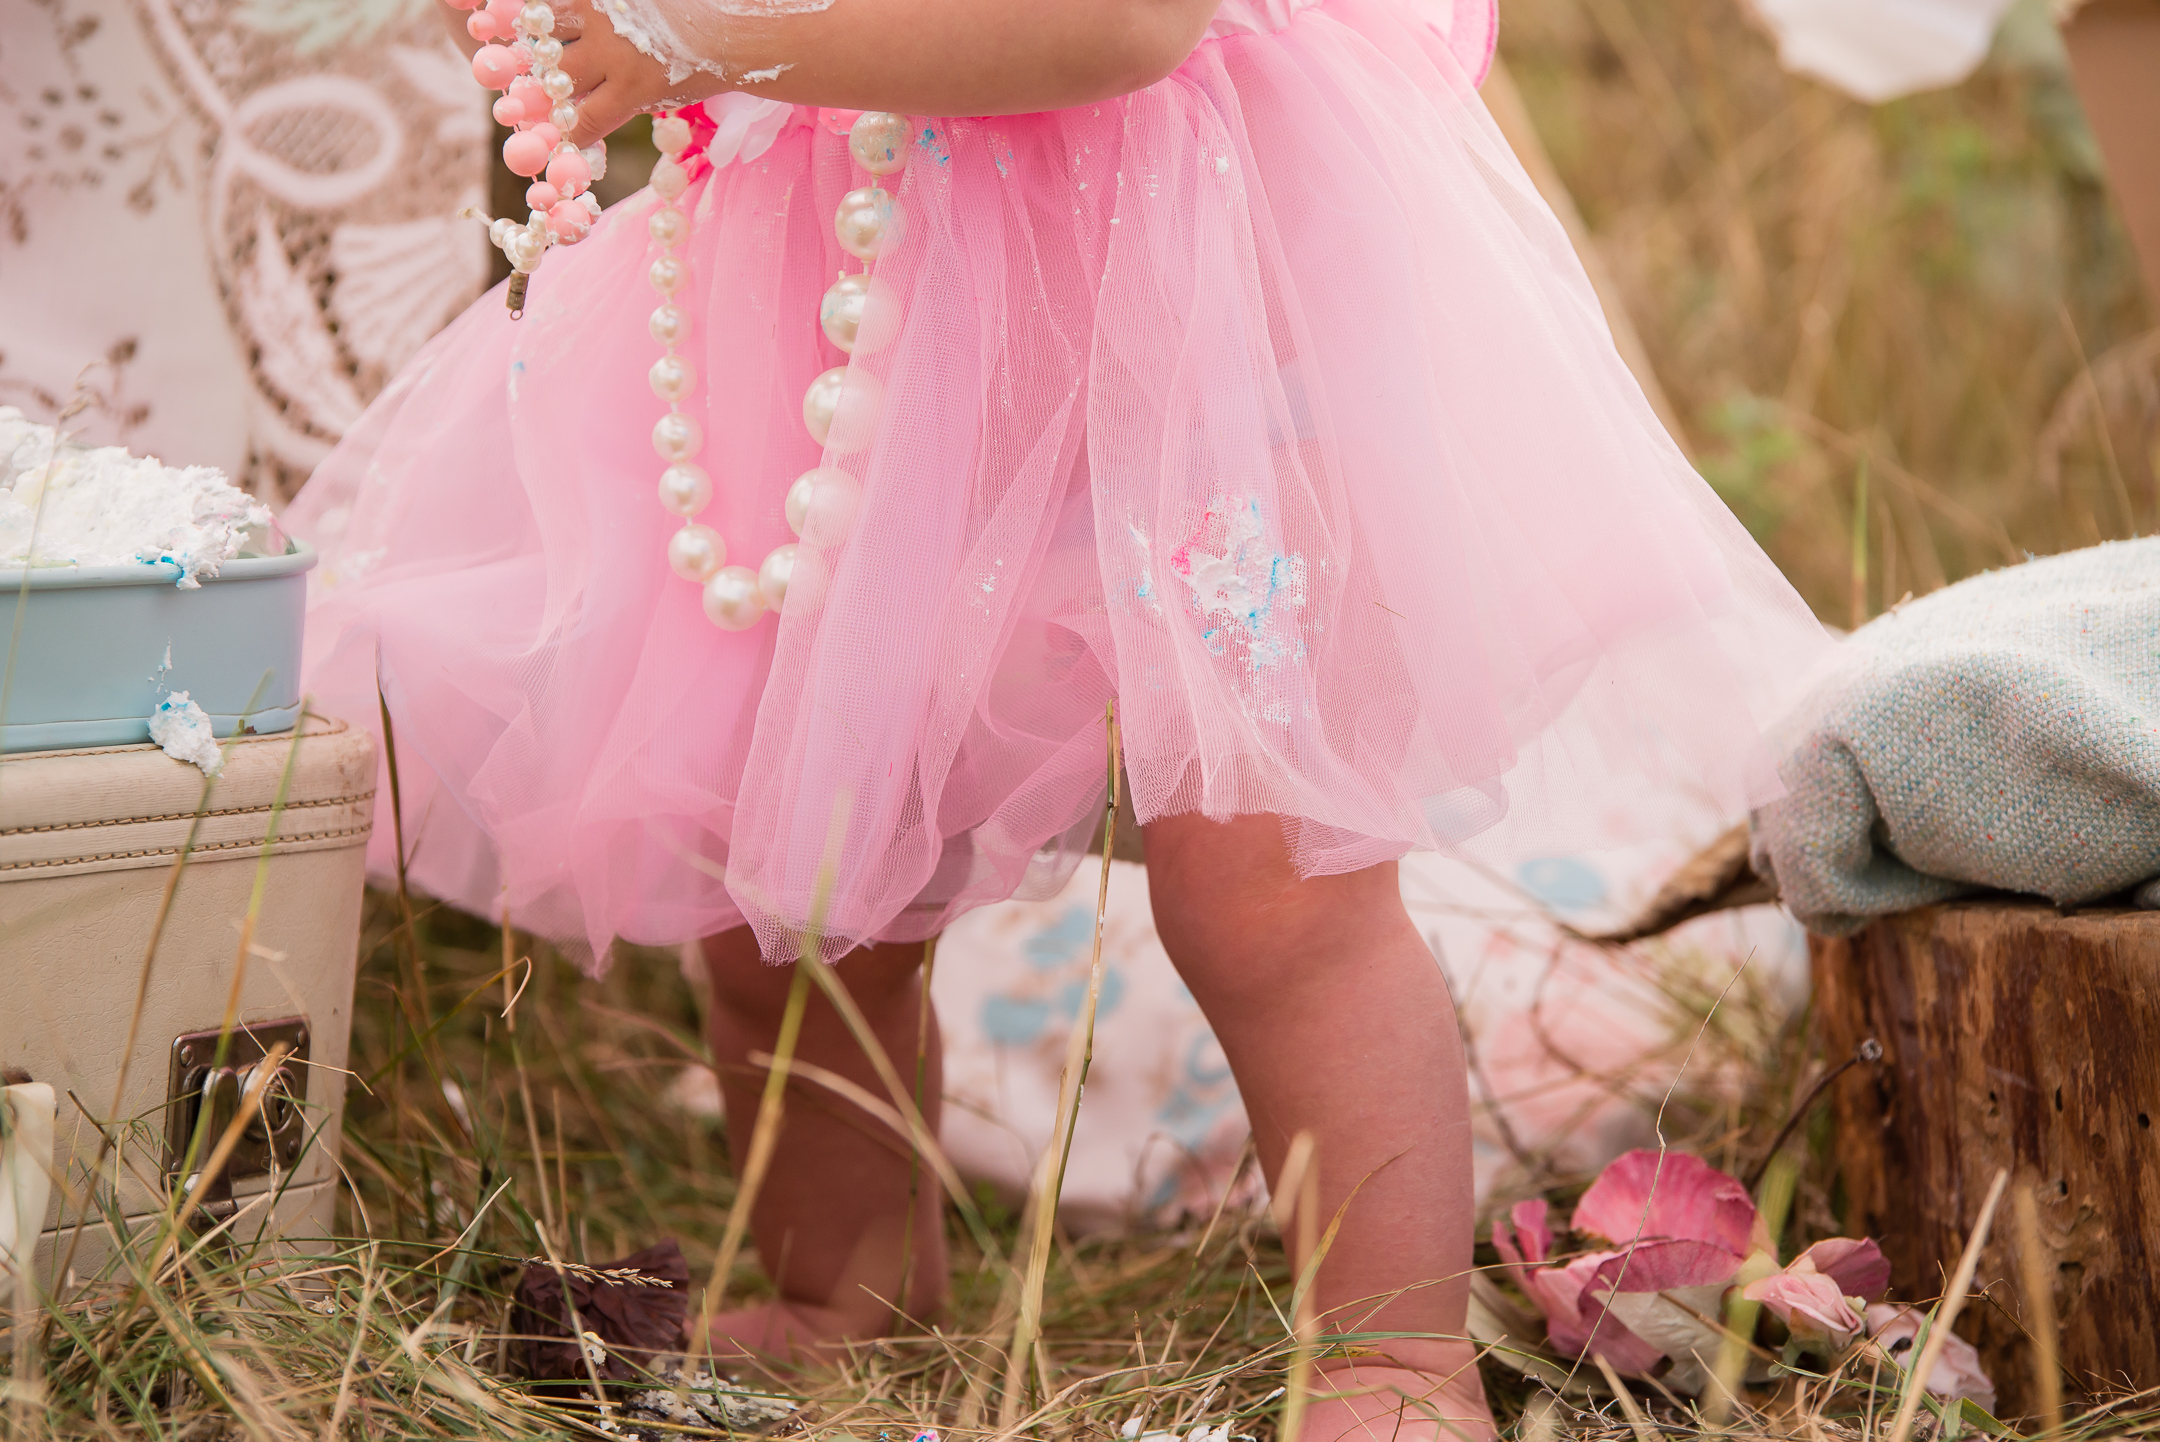 Naomi Lucienne Photography - First Birthday - 170829428.jpg